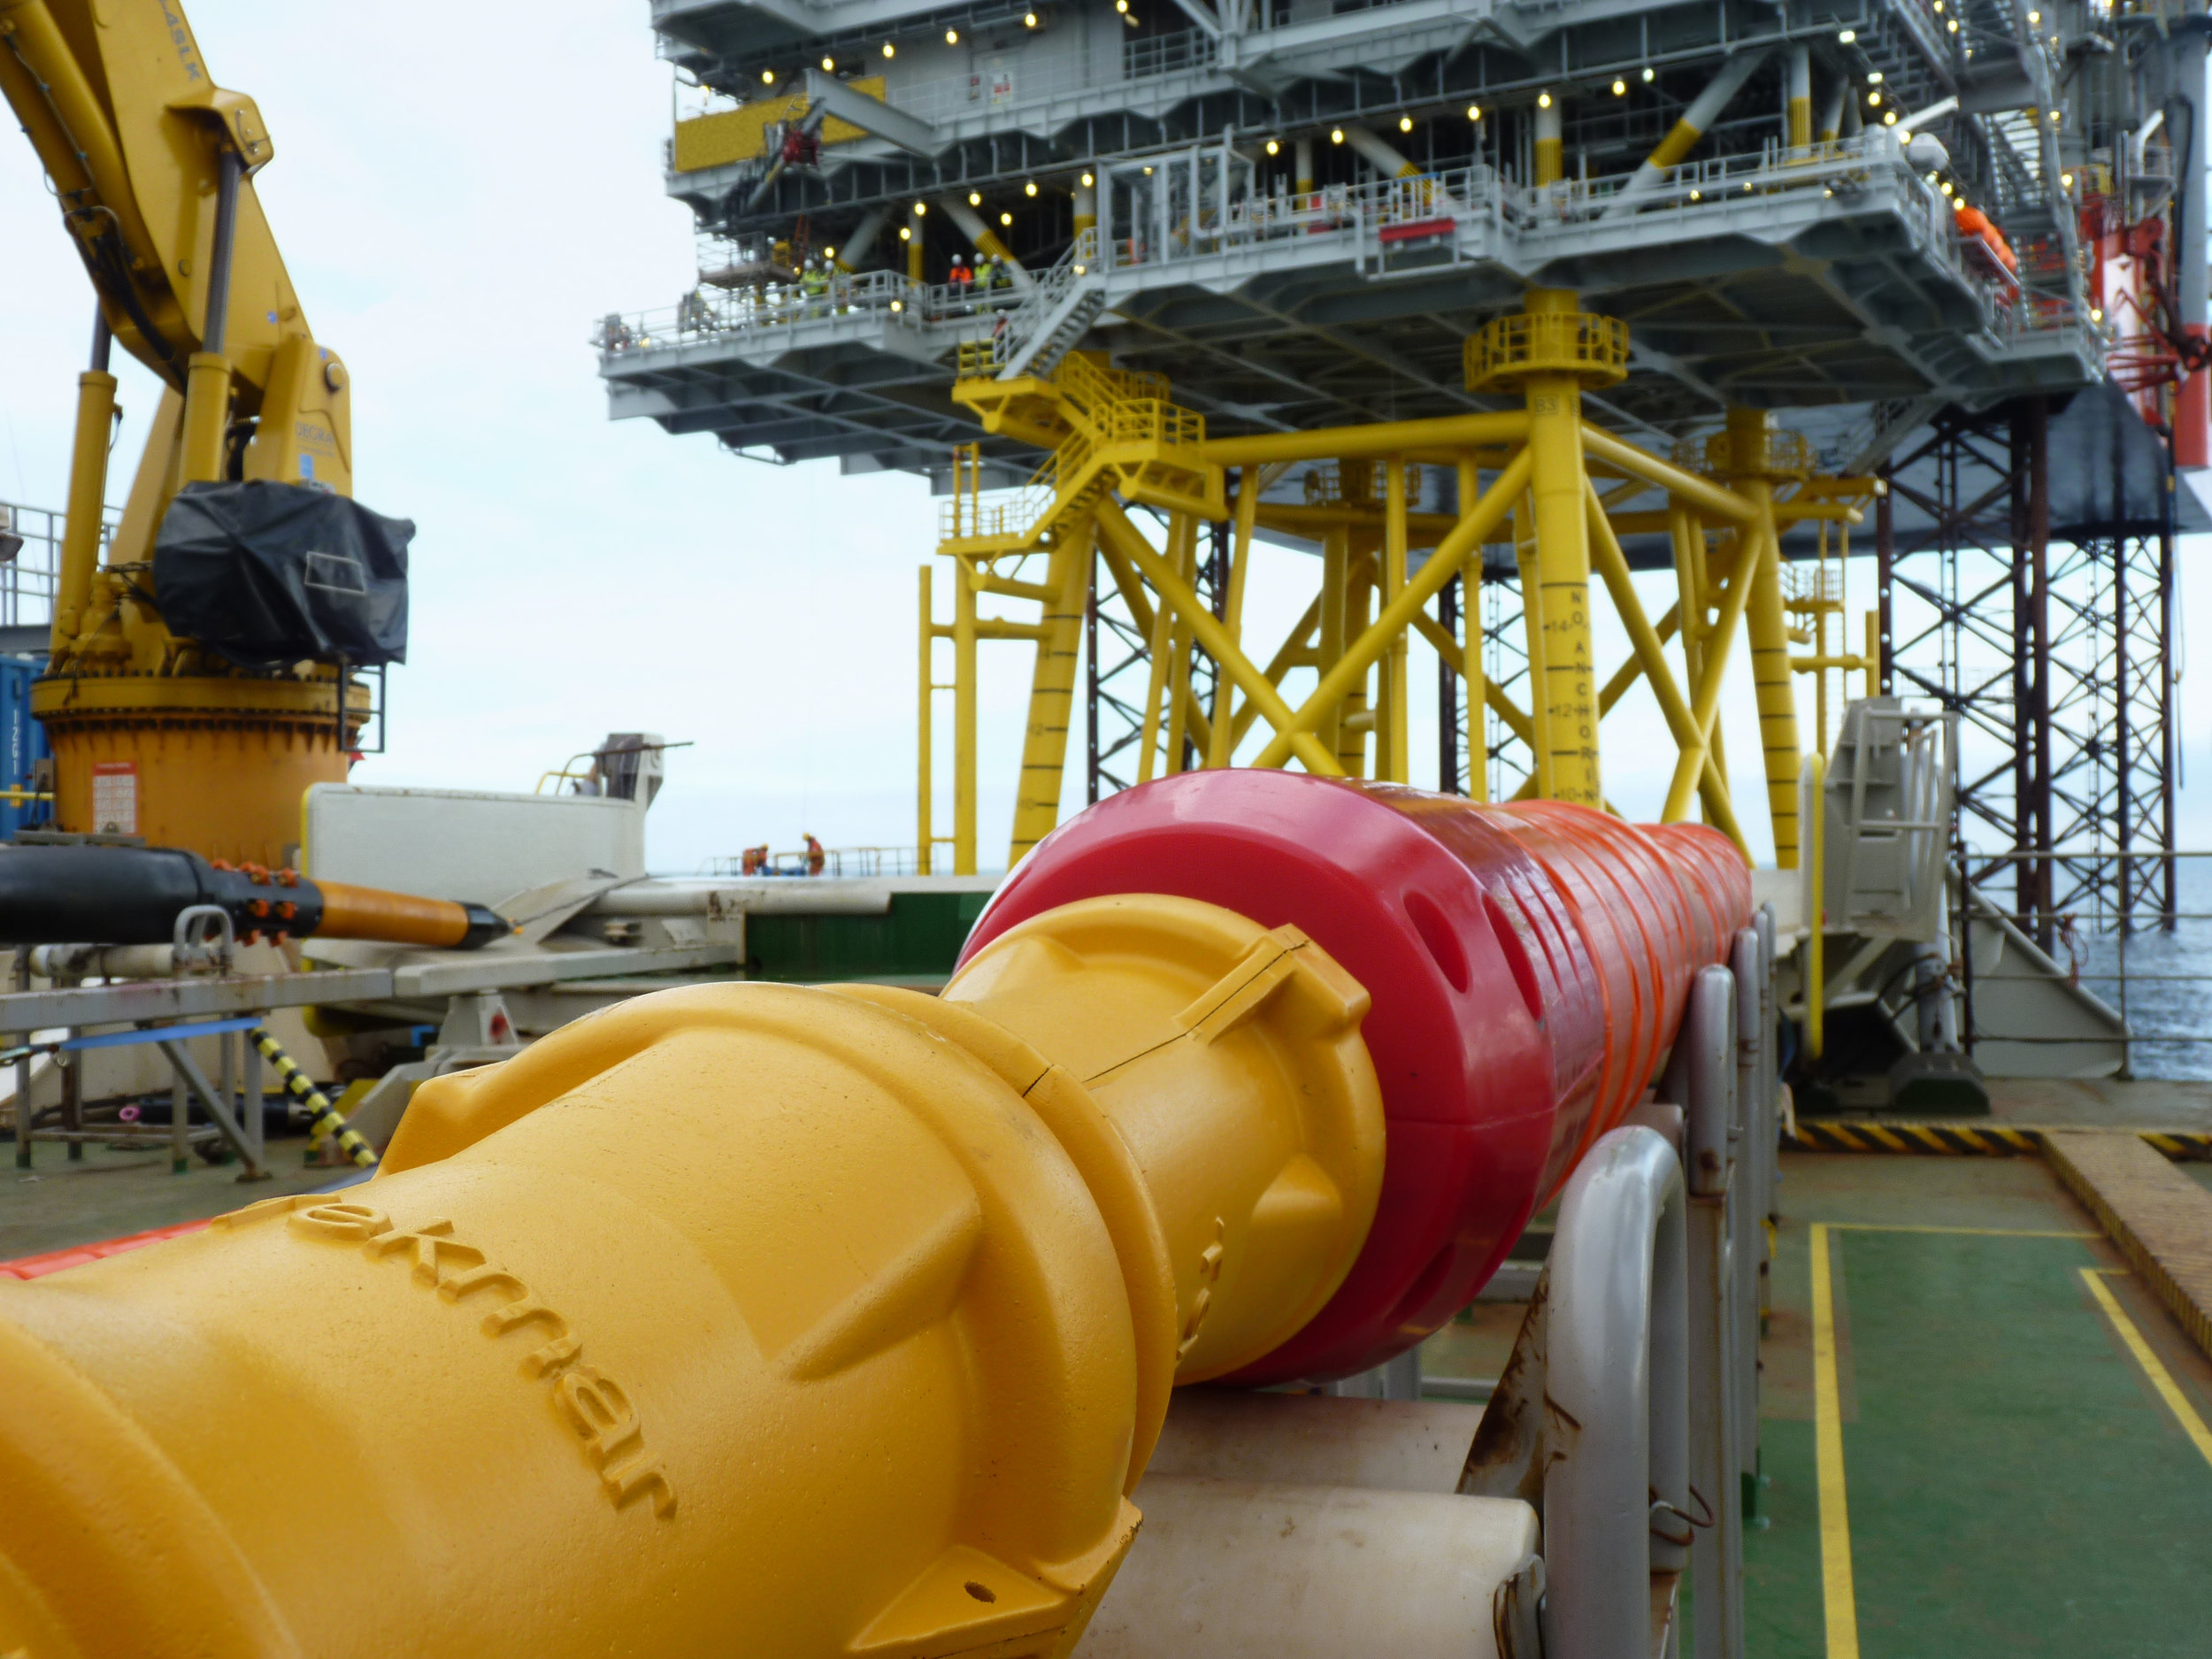 Image Caption: Tekmar Cable Protection System being installed offshore.  High resolution image can be downloaded here.